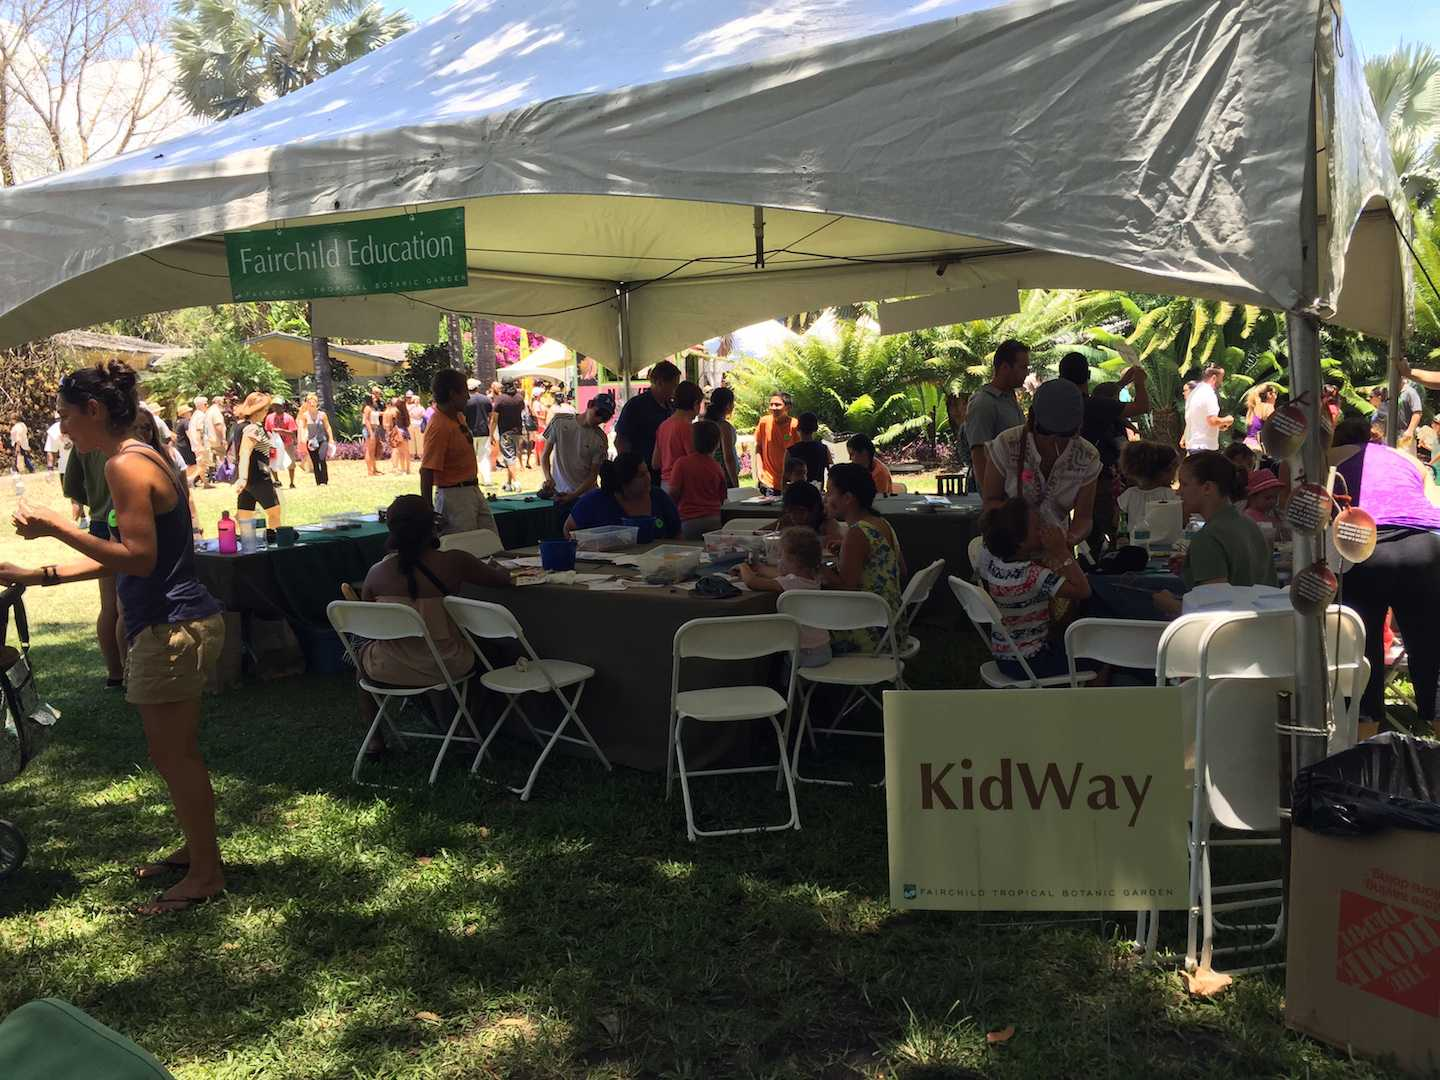 The children at Mango Fest got to learn at the Fairchild Education tent.